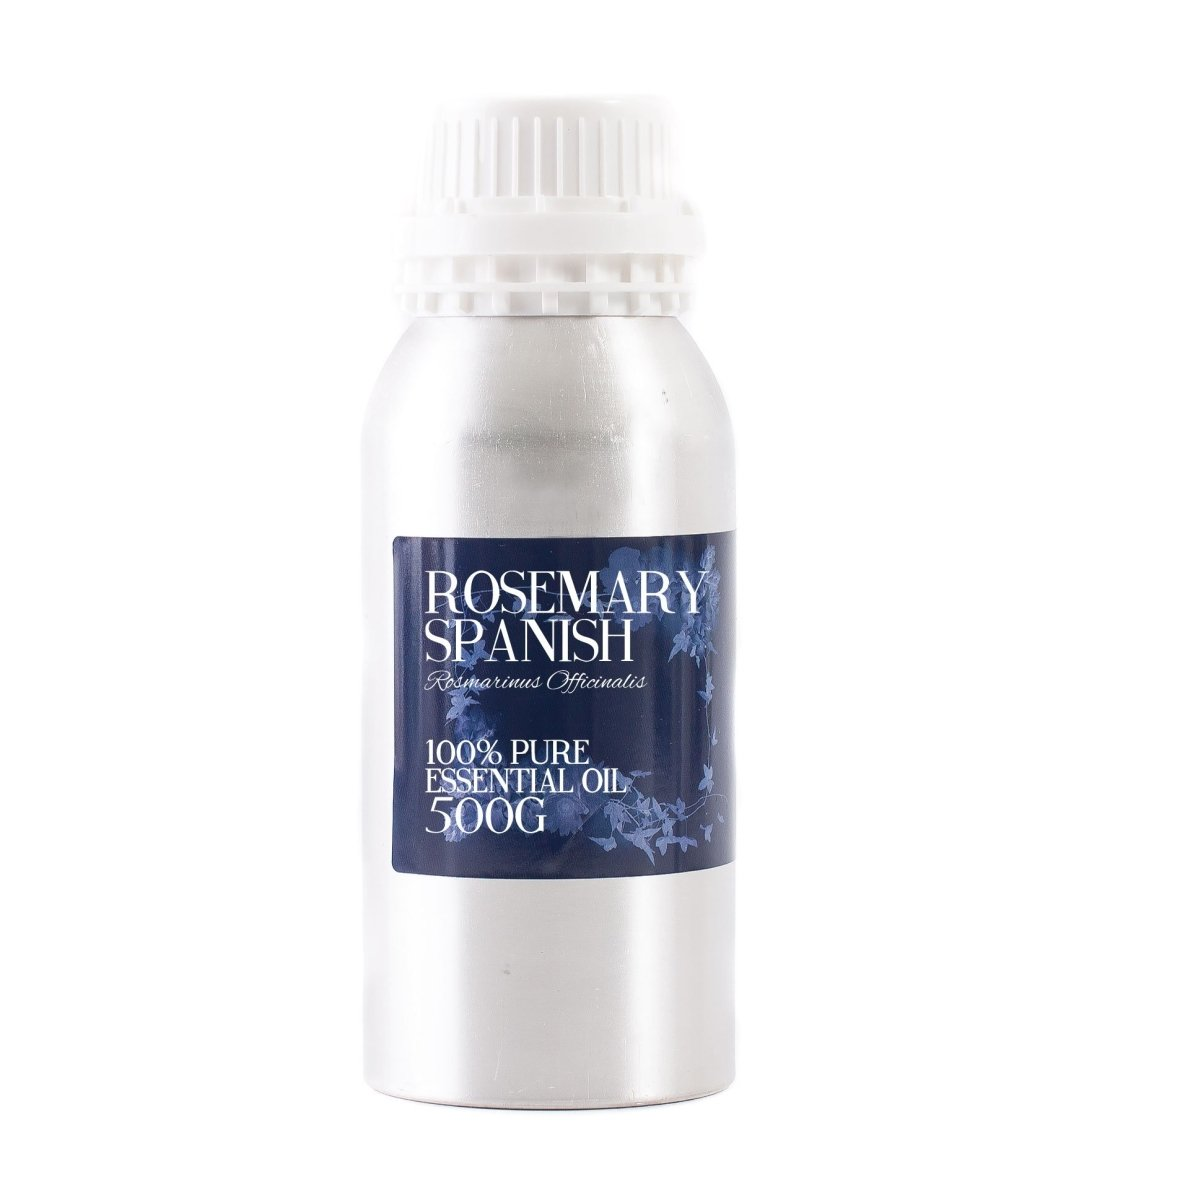 Rosemary Spanish Essential Oil - Mystic Moments UK